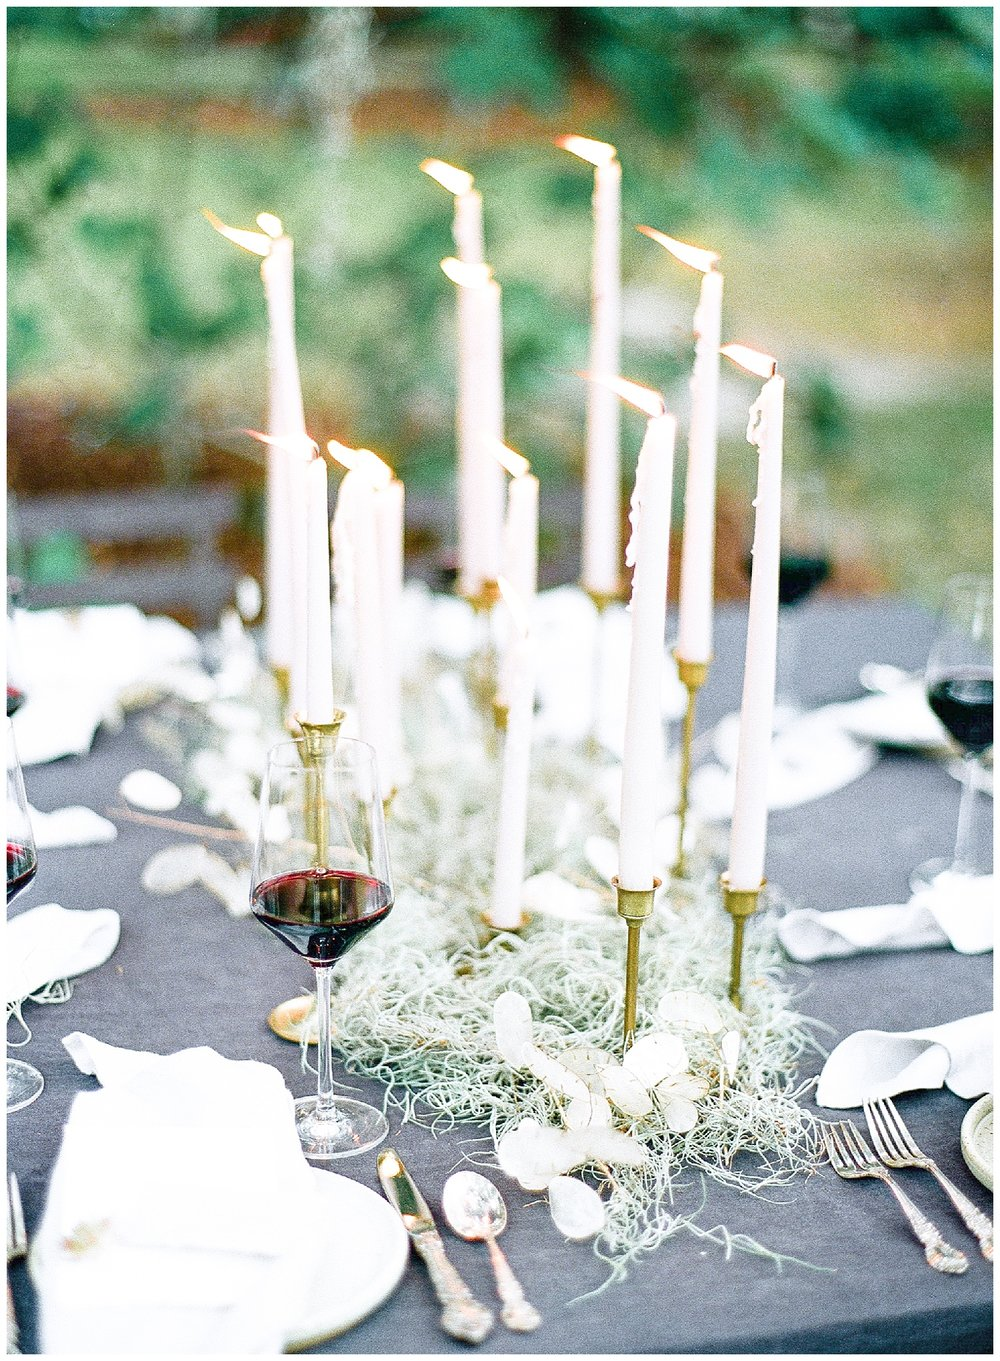 Charleston_Wedding_Janine_Licare_Photography_East_Made_Event_Company_0017.jpg